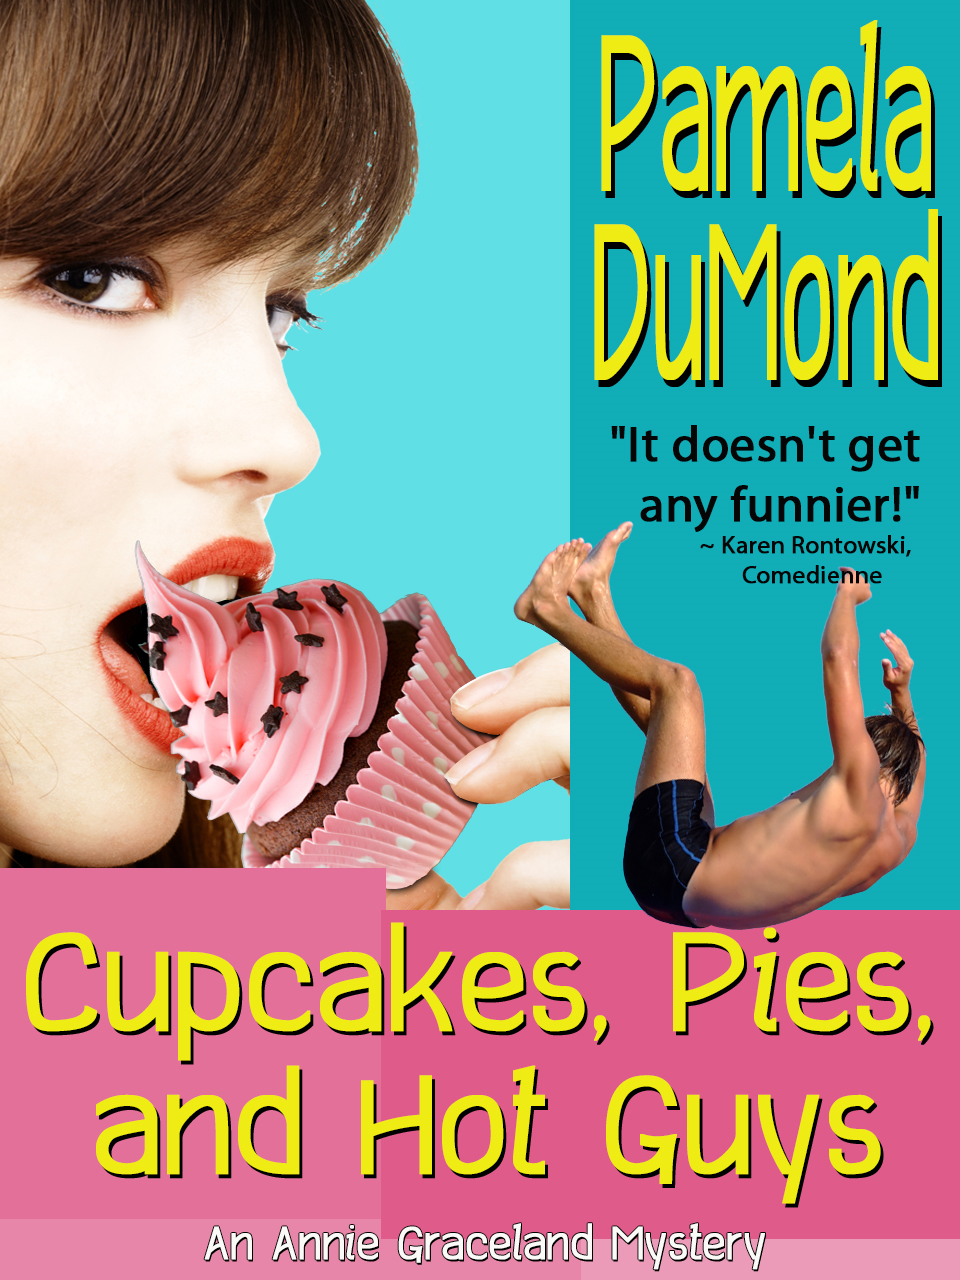 Cupcakes, Pies, and Hot Guys By: Pamela DuMond